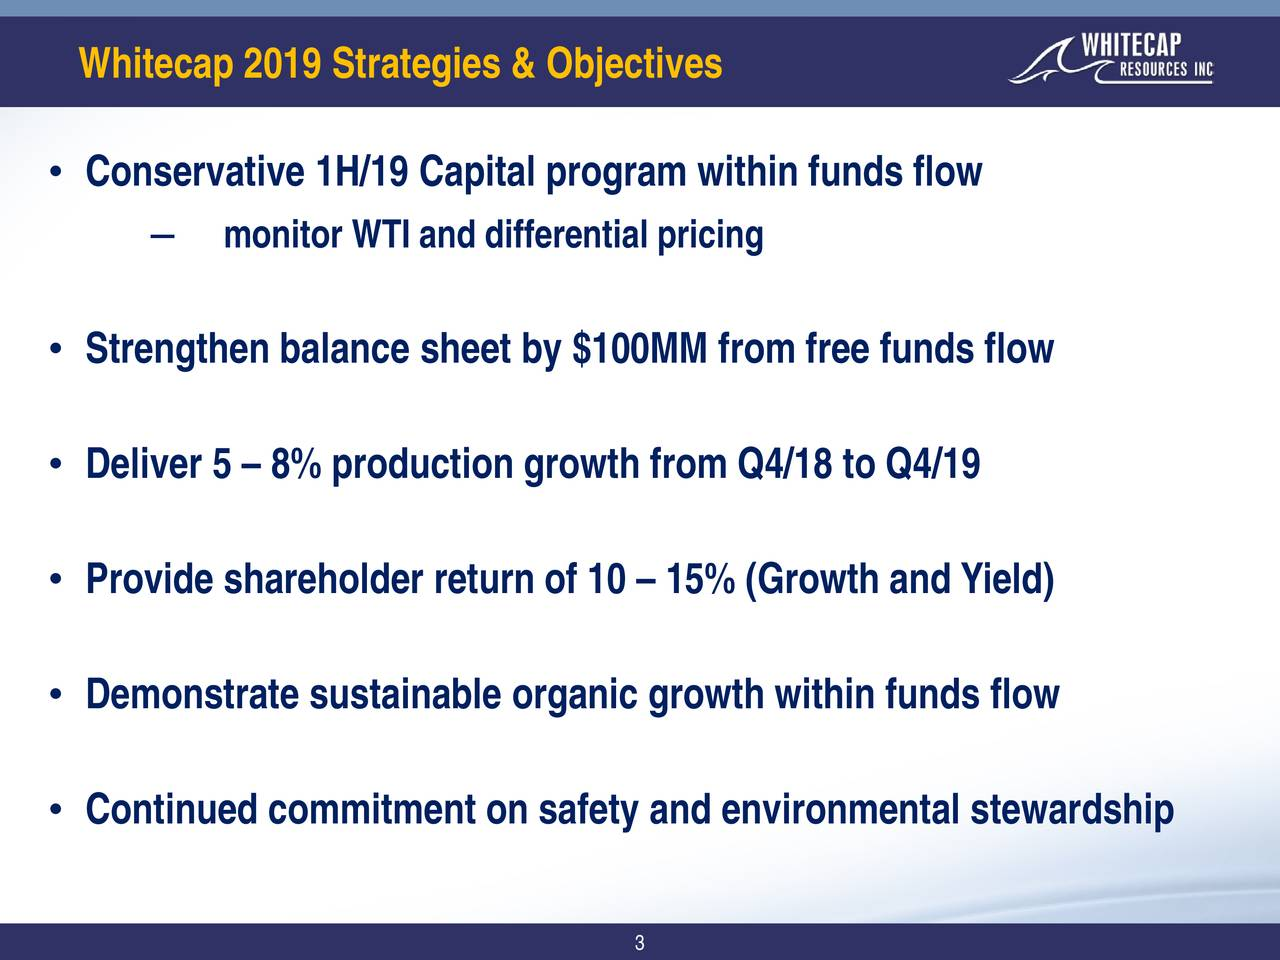 • Conservative 1H/19 Capital program within funds flow ‒ monitor WTI and differential pricing • Strengthen balance sheet by $100MM from free funds flow • Deliver 5 – 8% production growth from Q4/18 to Q4/19 • Provide shareholder return of 10– 15% (Growth and Yield) • Demonstrate sustainable organic growth within funds flow • Continued commitment on safety and environmental stewardship